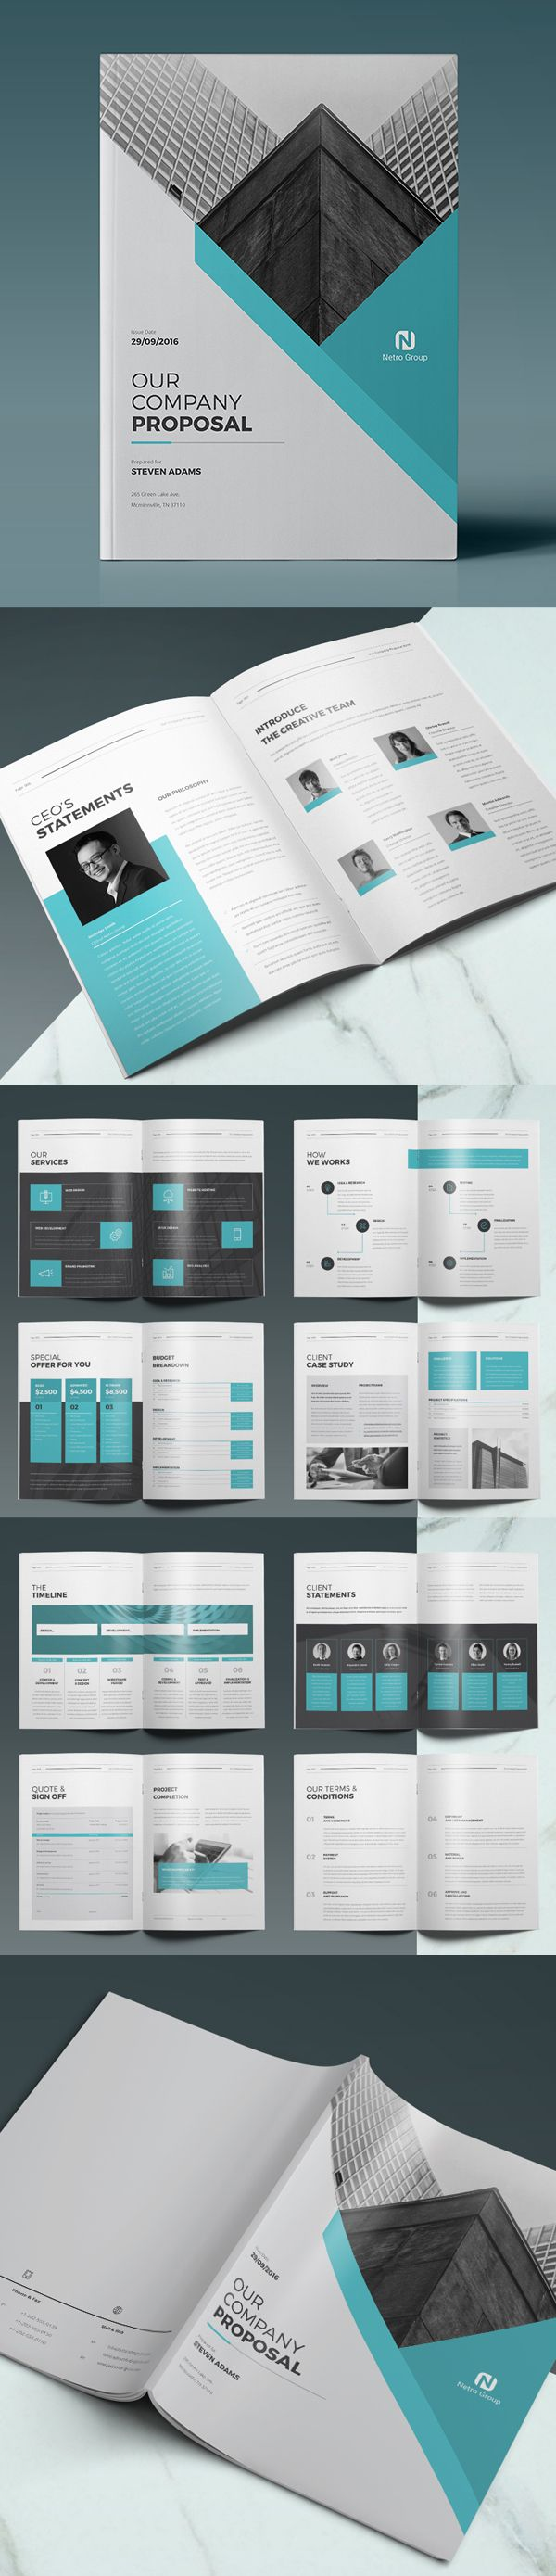 Best 25 Proposal templates ideas – Proposal Templates